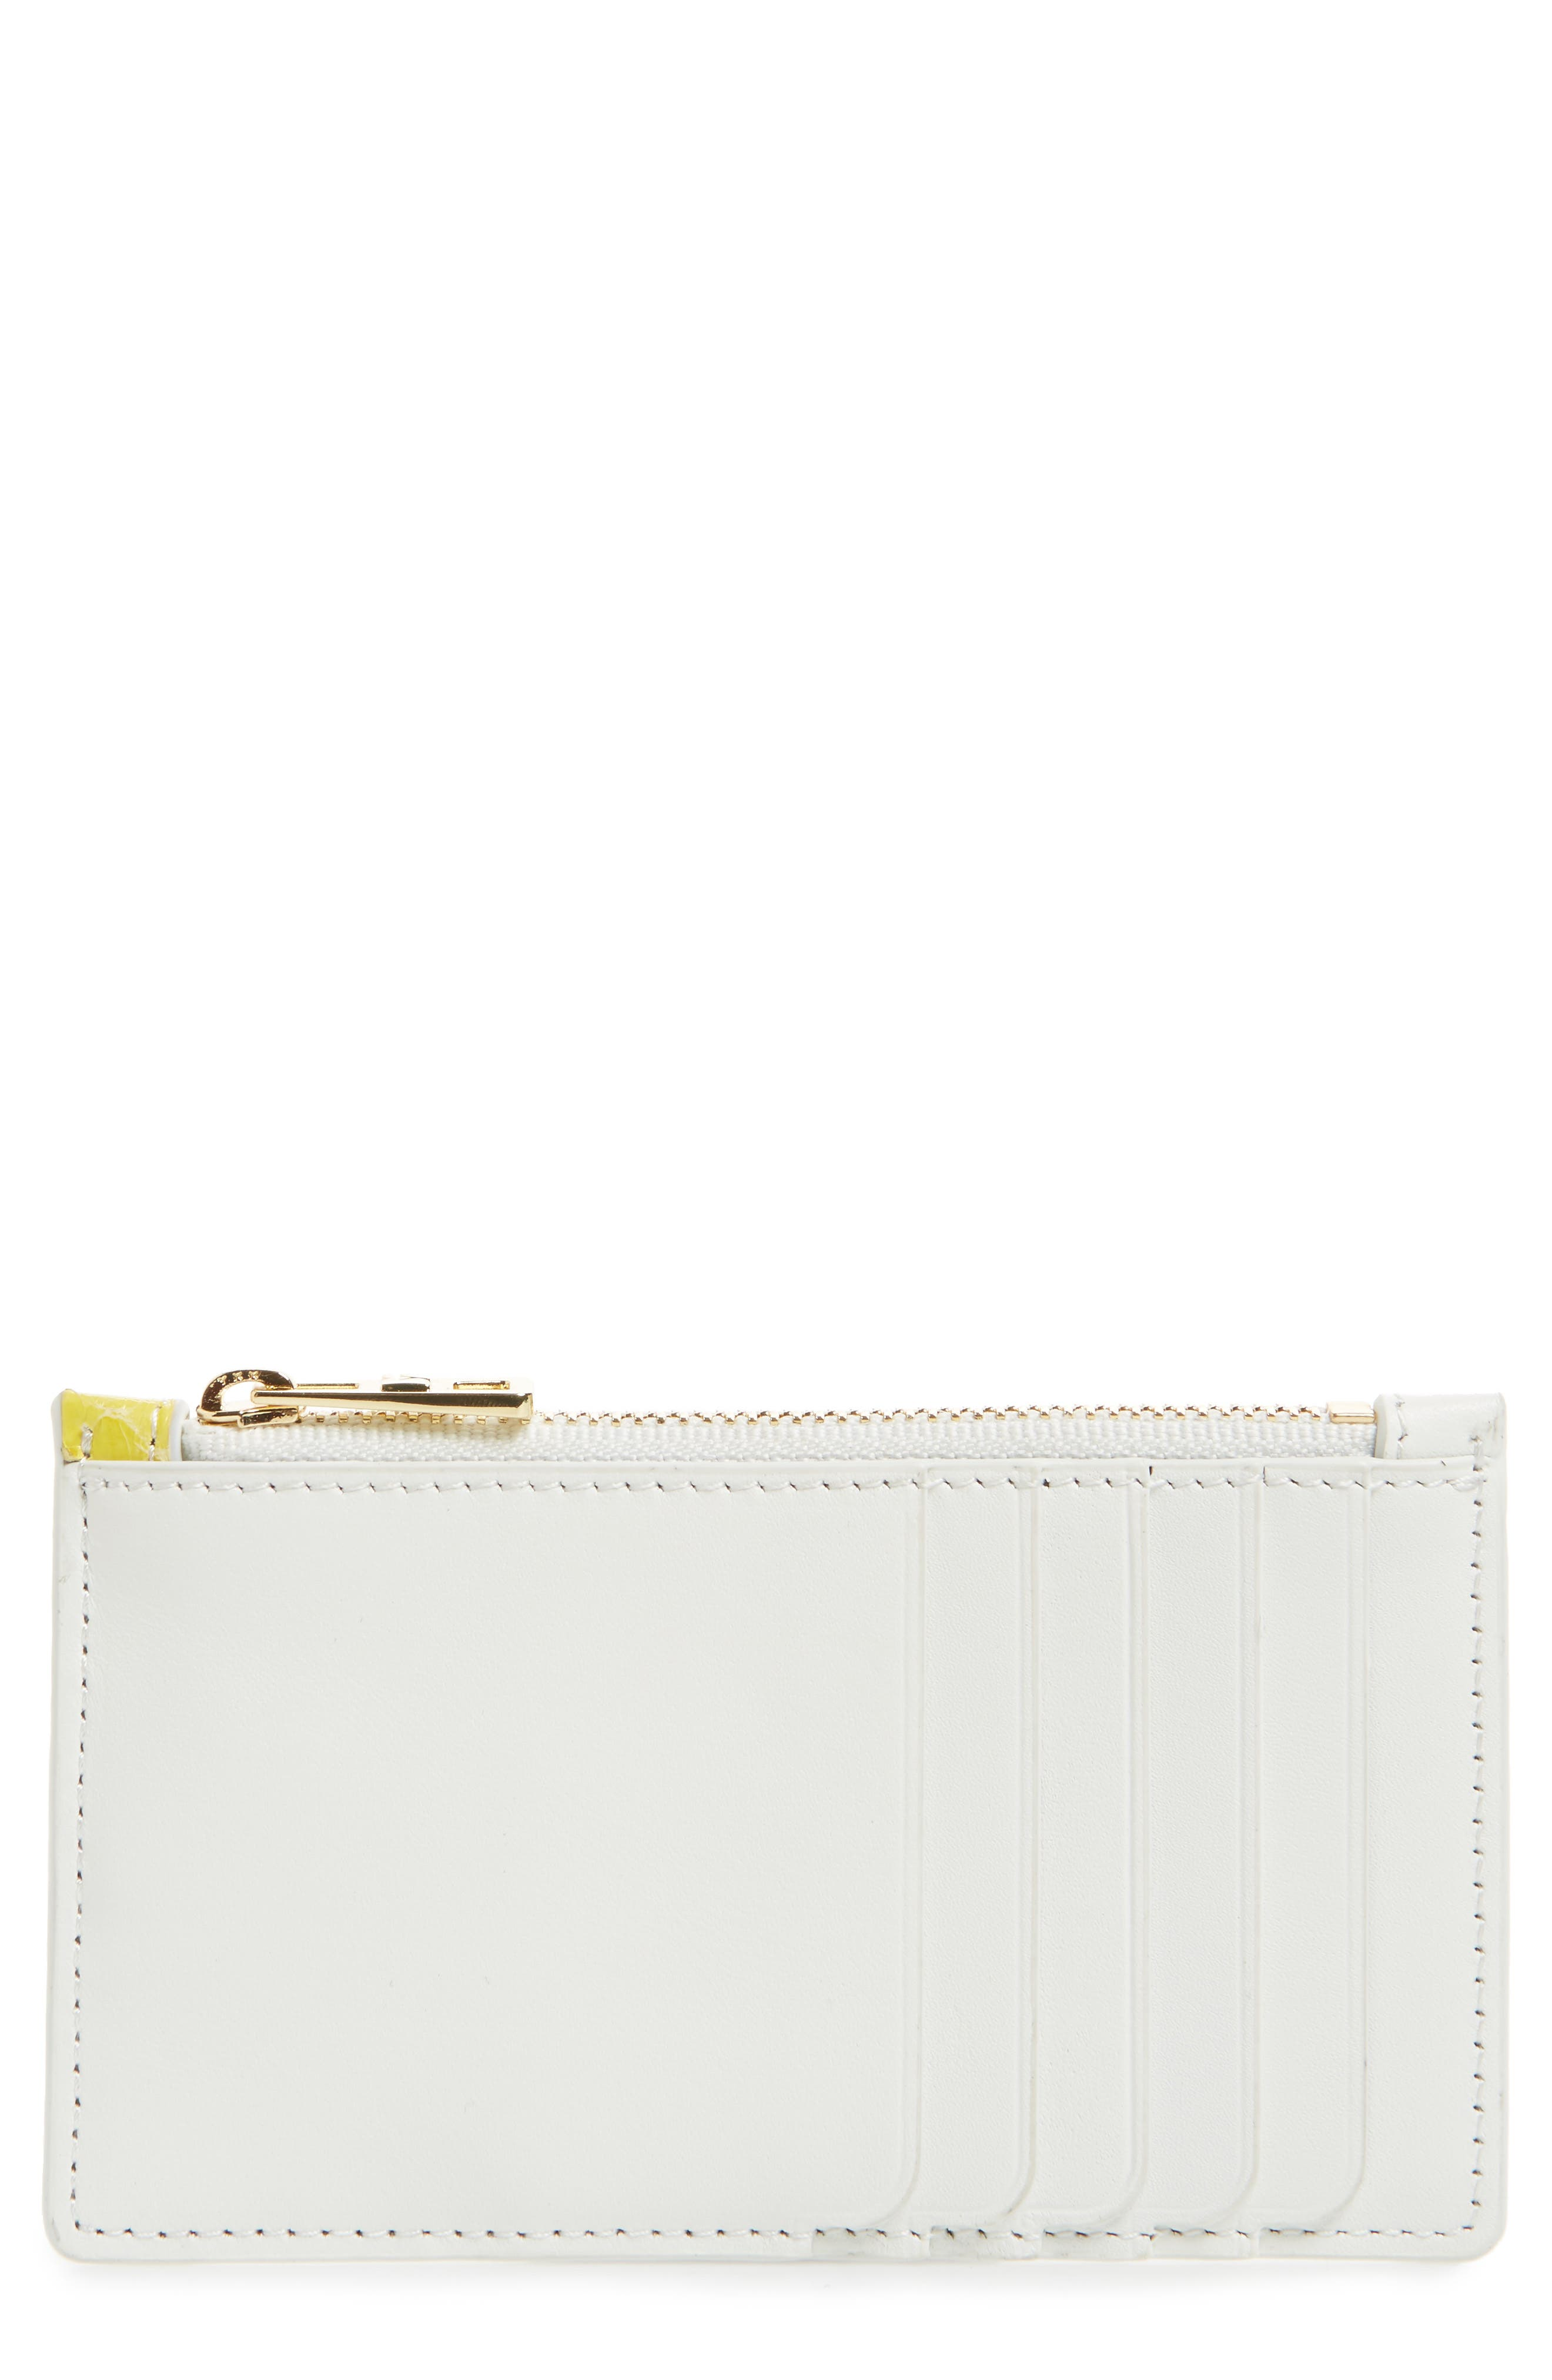 Small Leather & Genuine Snakeskin Card Case,                         Main,                         color, Yellow/ Silver/ White